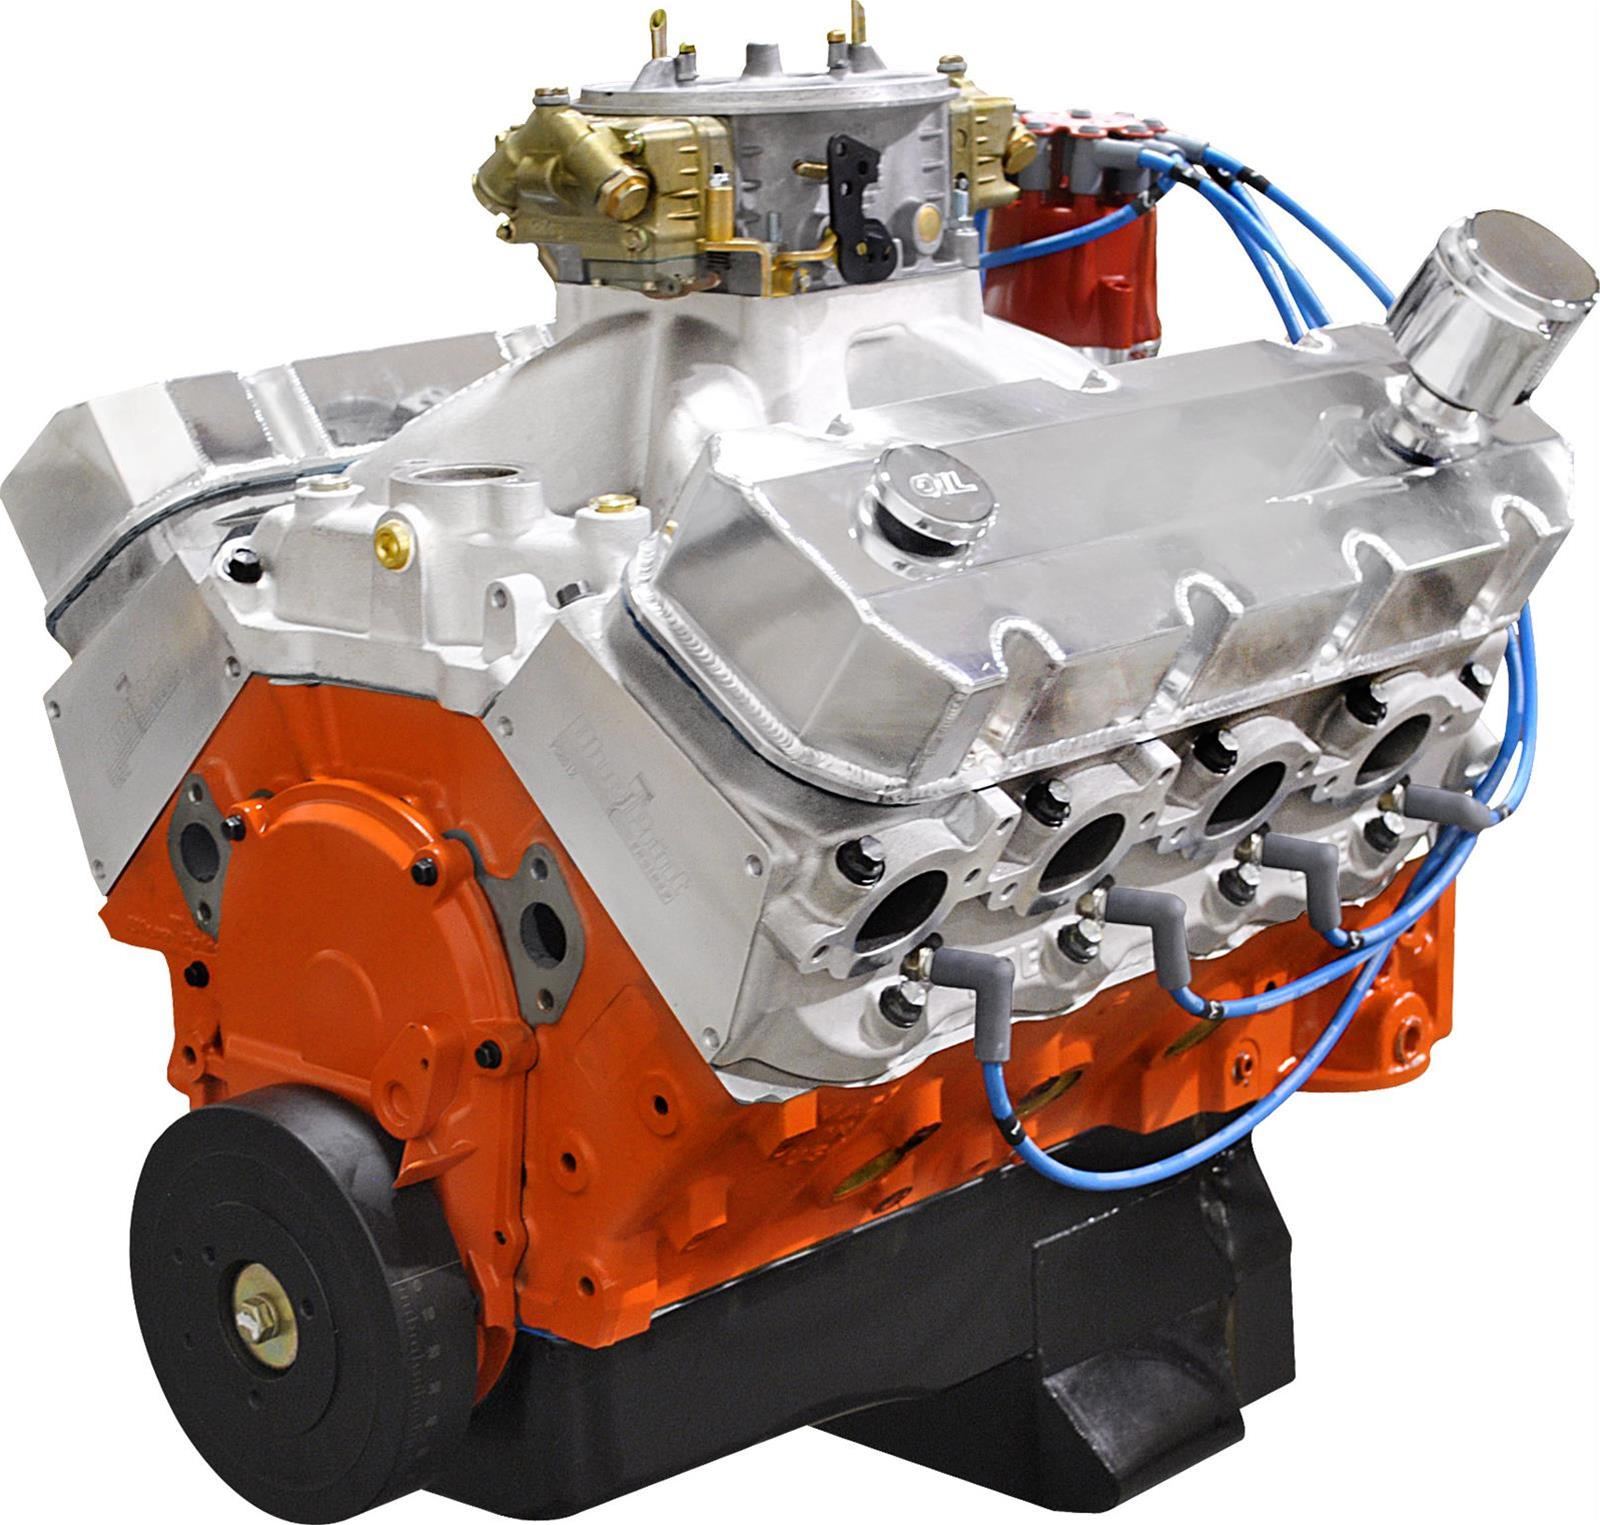 hight resolution of blueprint engines marine pro series chevy 632 c i d 815 hp dressed long block crate engines psm6320ctc1 free shipping on orders over 99 at summit racing